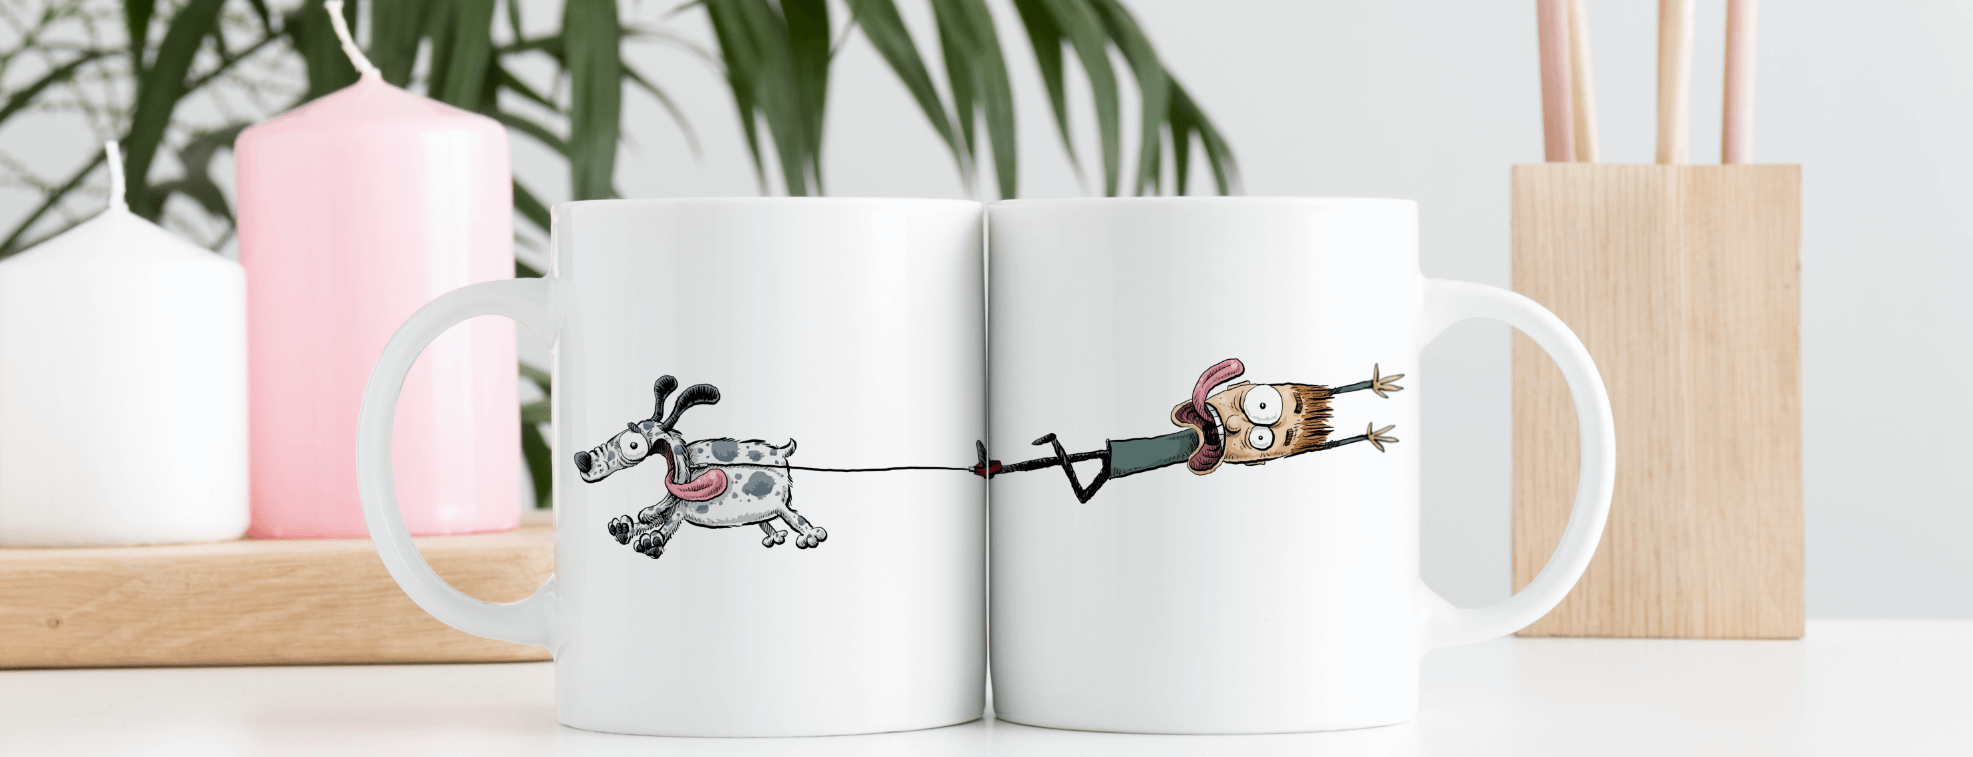 Funny mugs with an illustration of a dog dragging his owner